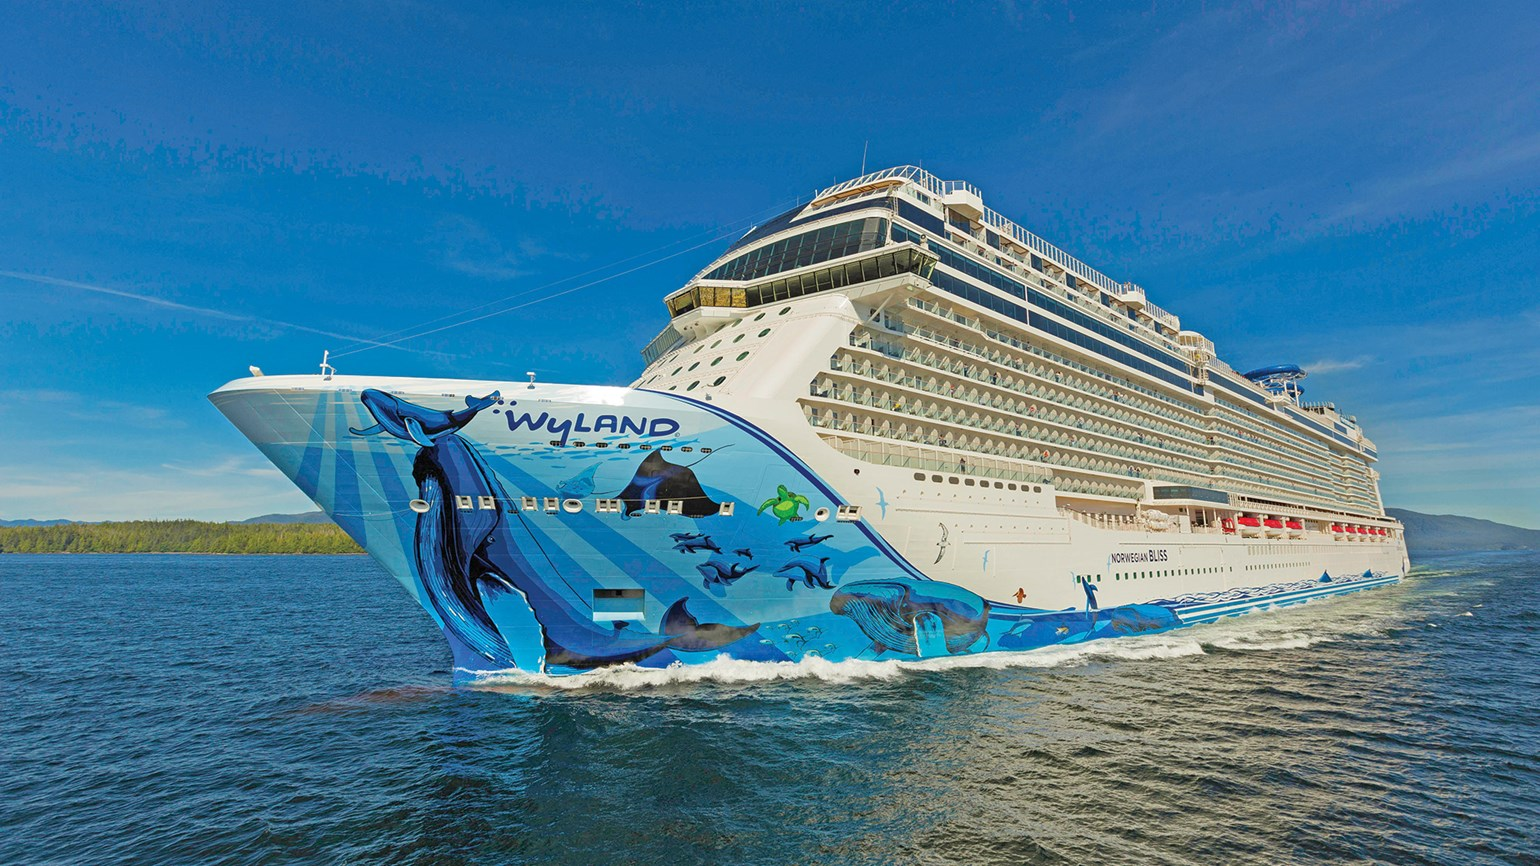 Norwegian Cruise Line Holdings sees encouraging signs for 2021